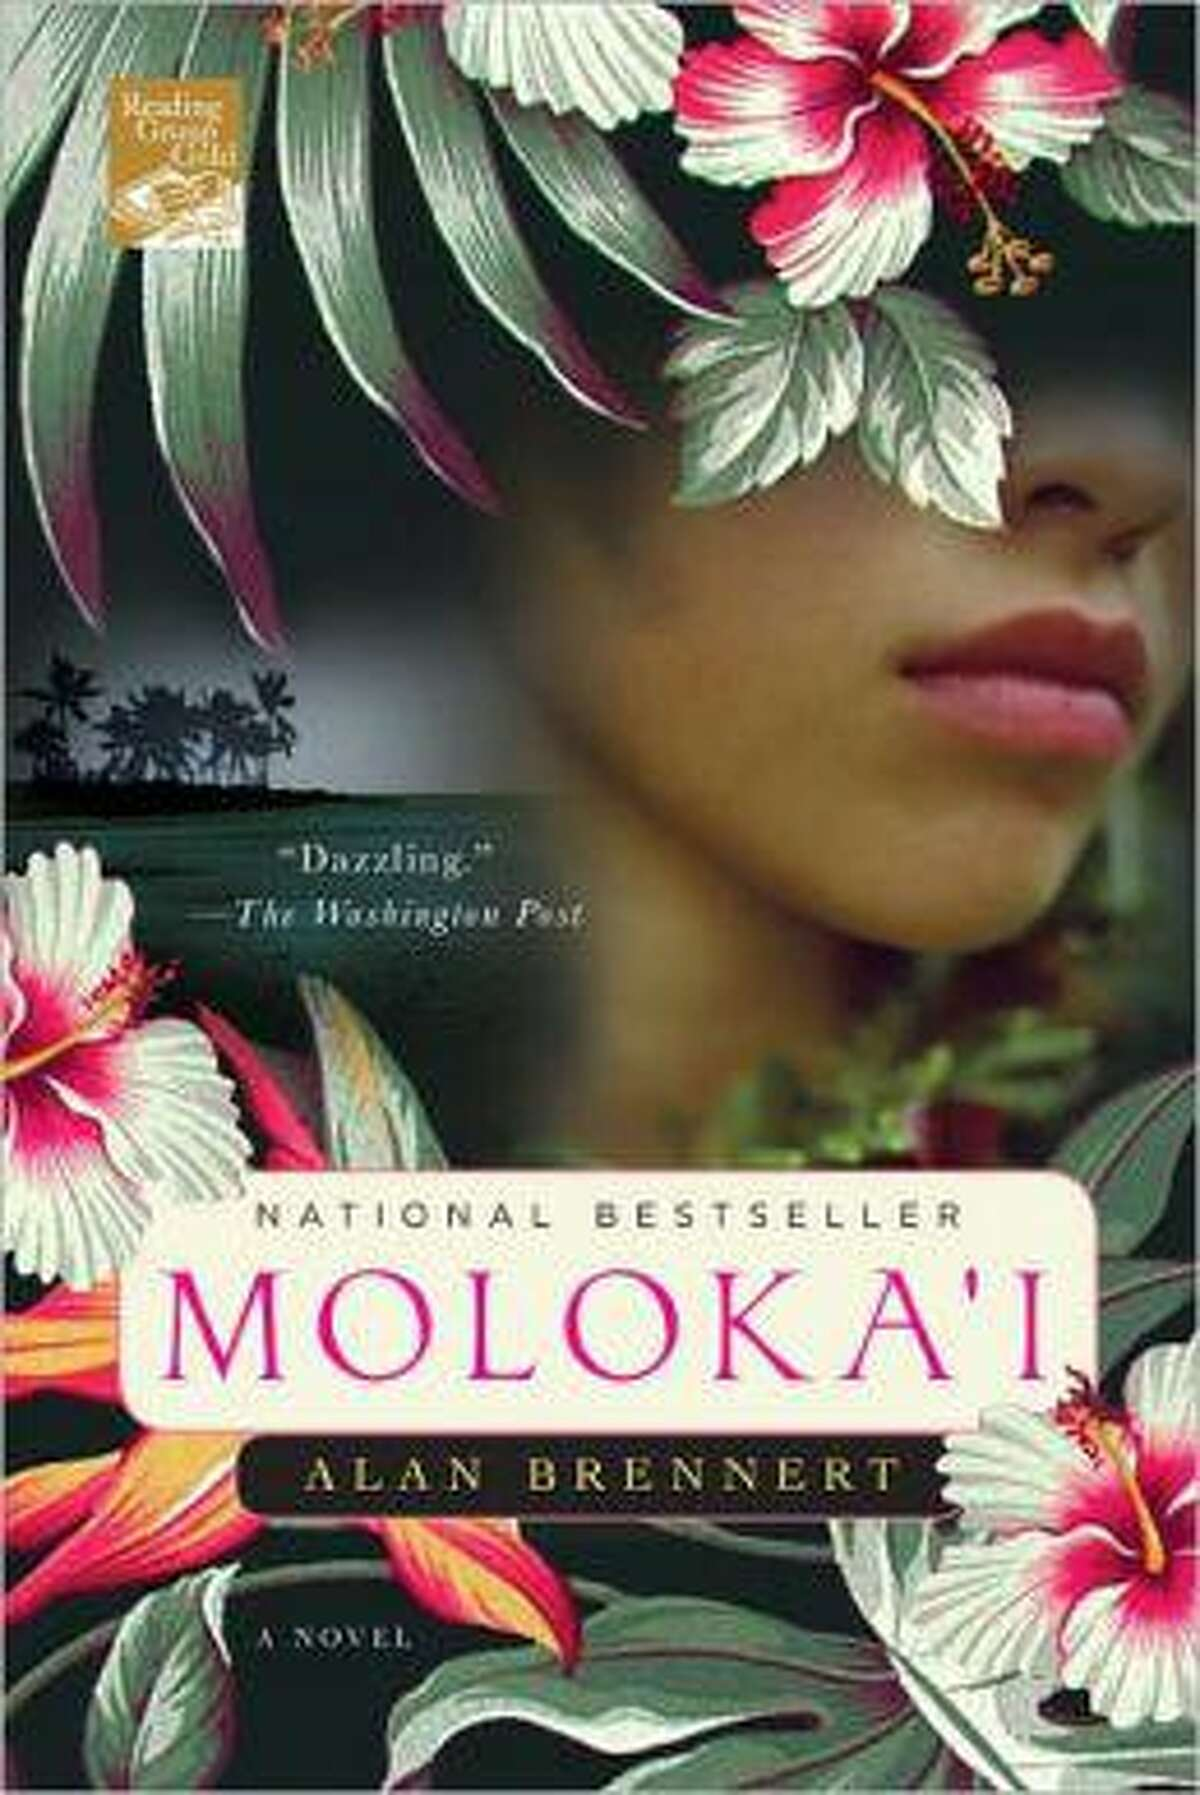 """The book to be discussed on Monday, May 10 is """"Moloka'i"""" by Alan Brennert."""